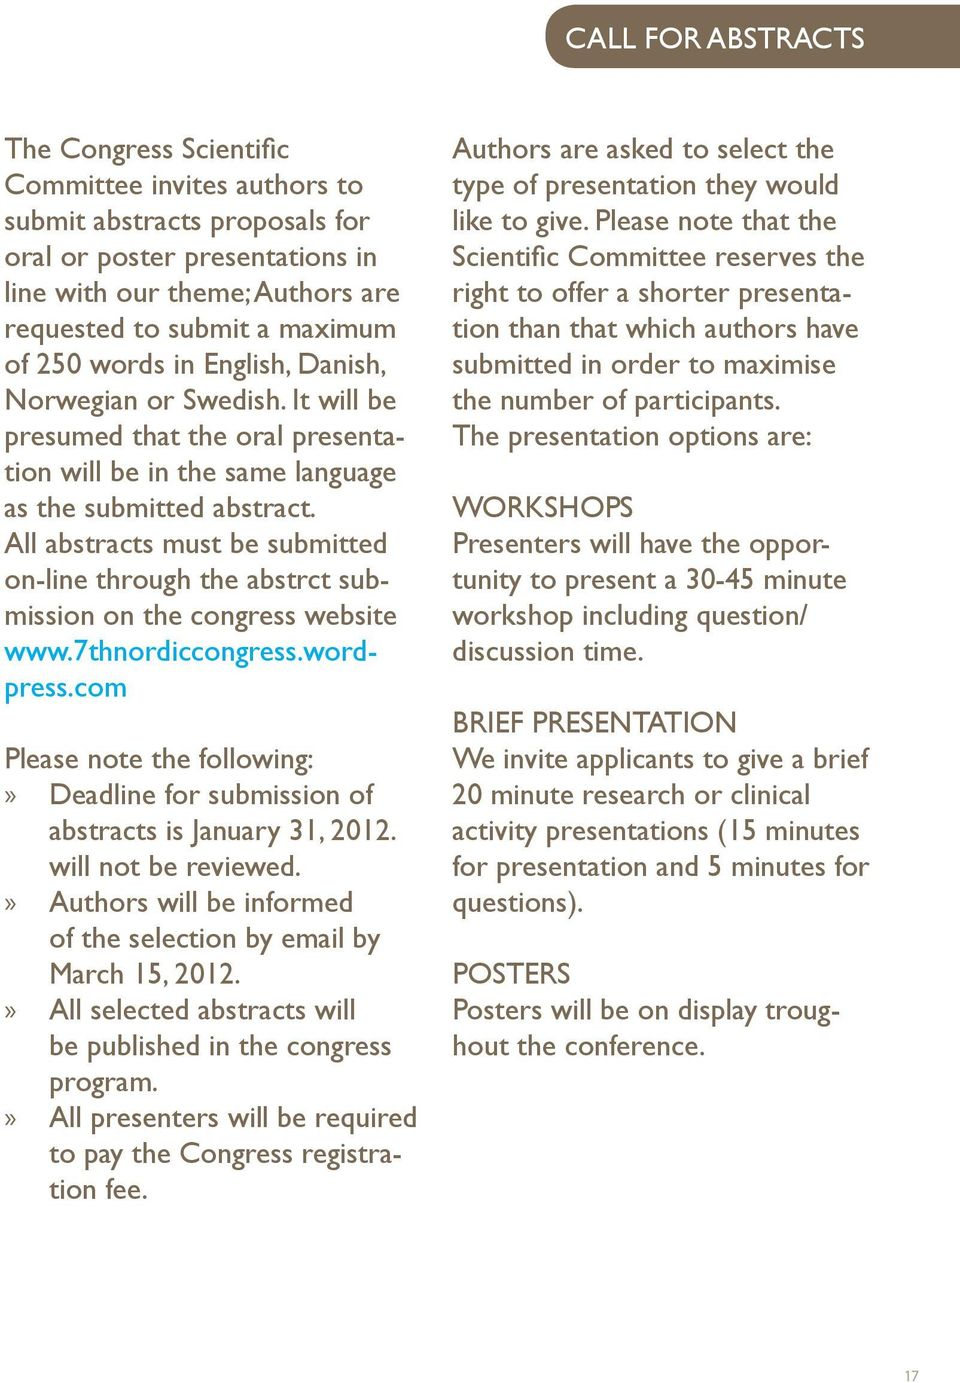 All abstracts must be submitted on-line through the abstrct submission on the congress website www.7thnordiccongress.wordpress.